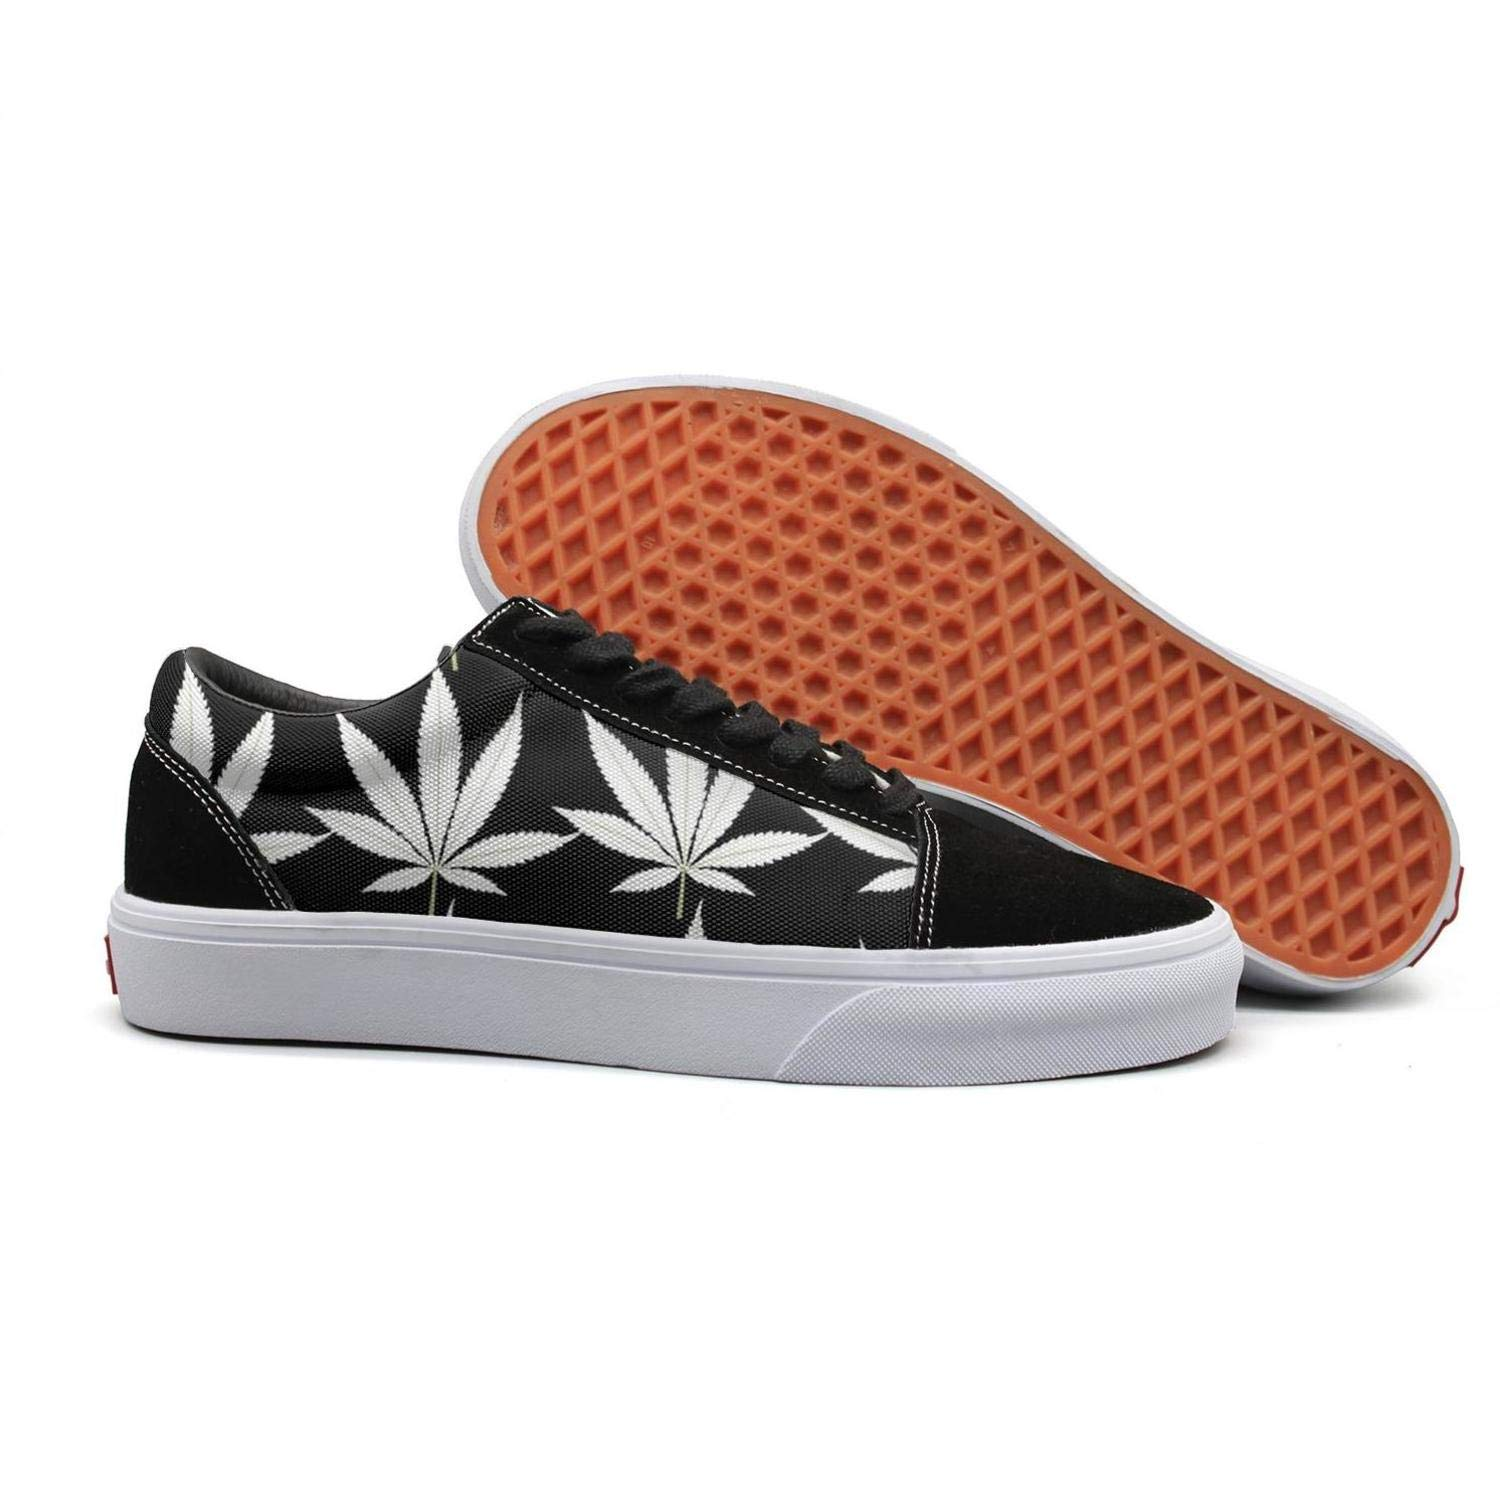 Marijuana White Leaves 8.5 B(M) US Uieort Marijuana White Leaves Womens Lace Up Sneakers shoes Casual